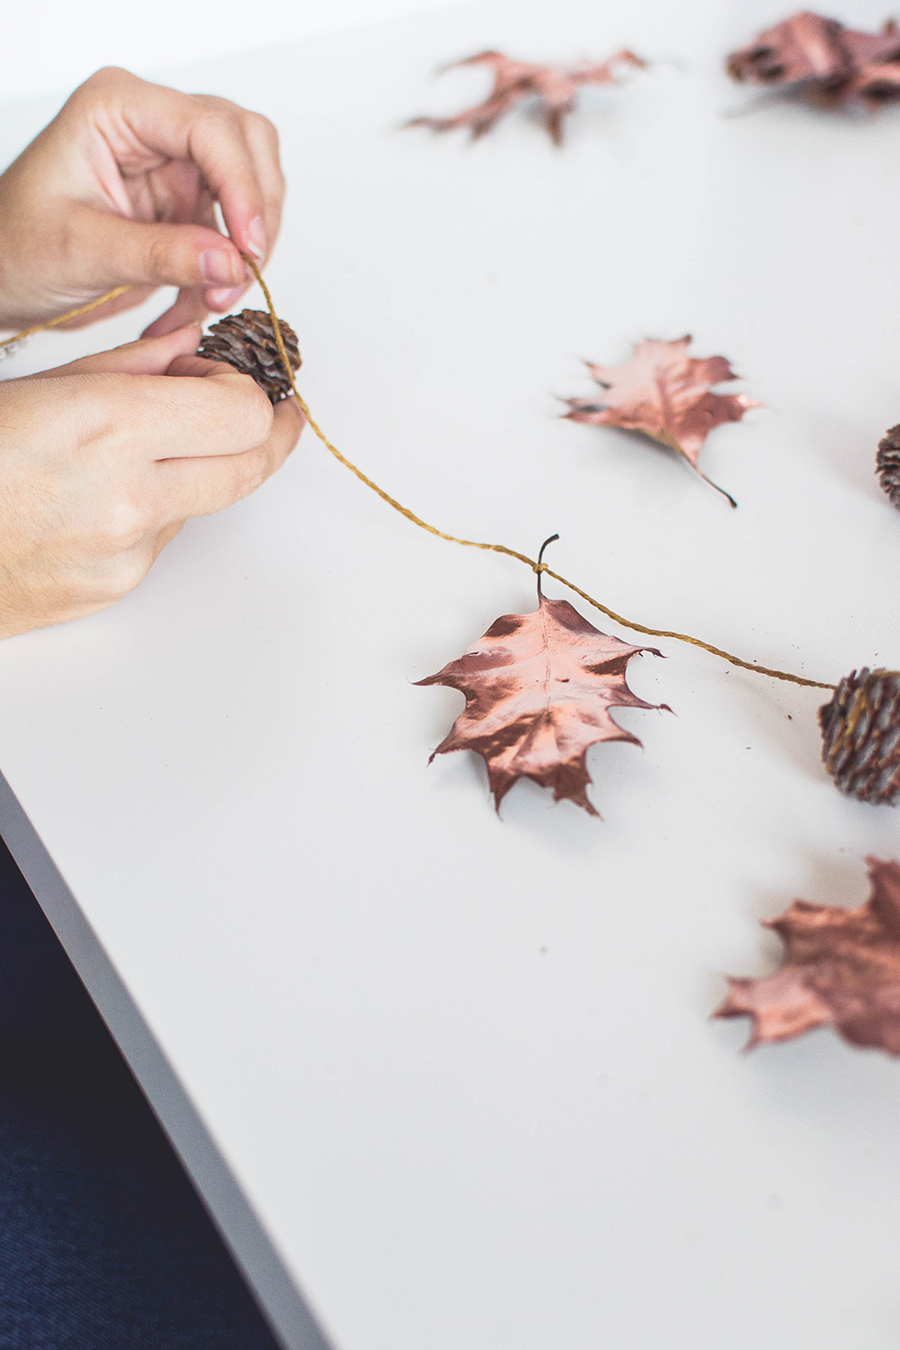 Create an Autumn garland with pinecones and leaves